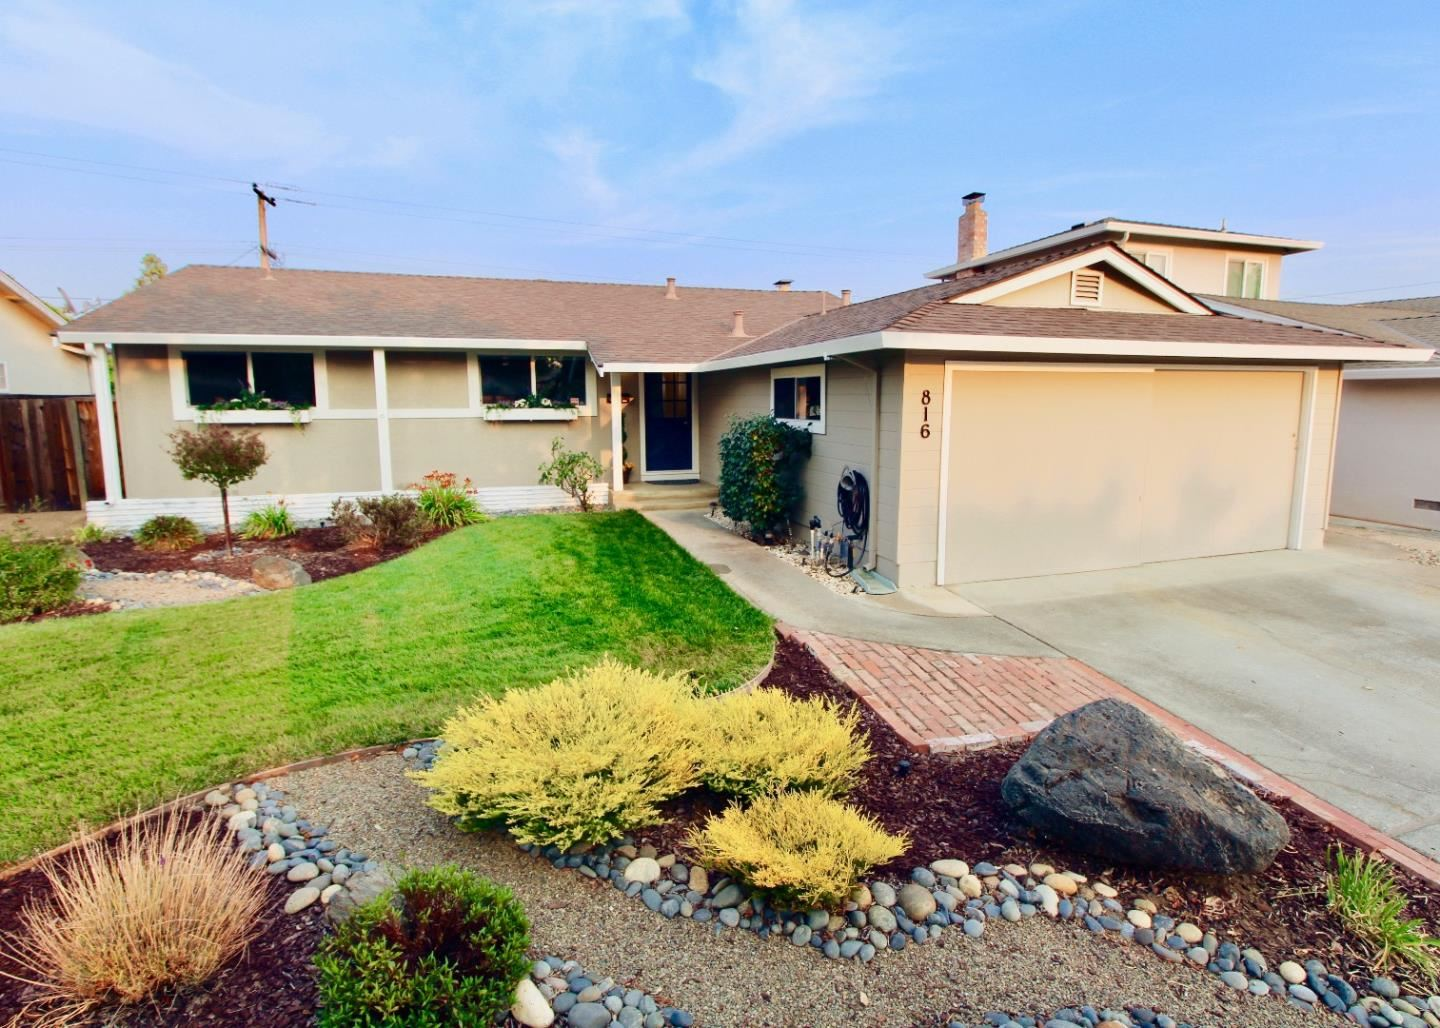 Photo for 816 Gwen Drive, CAMPBELL, CA 95008 (MLS # ML81865574)